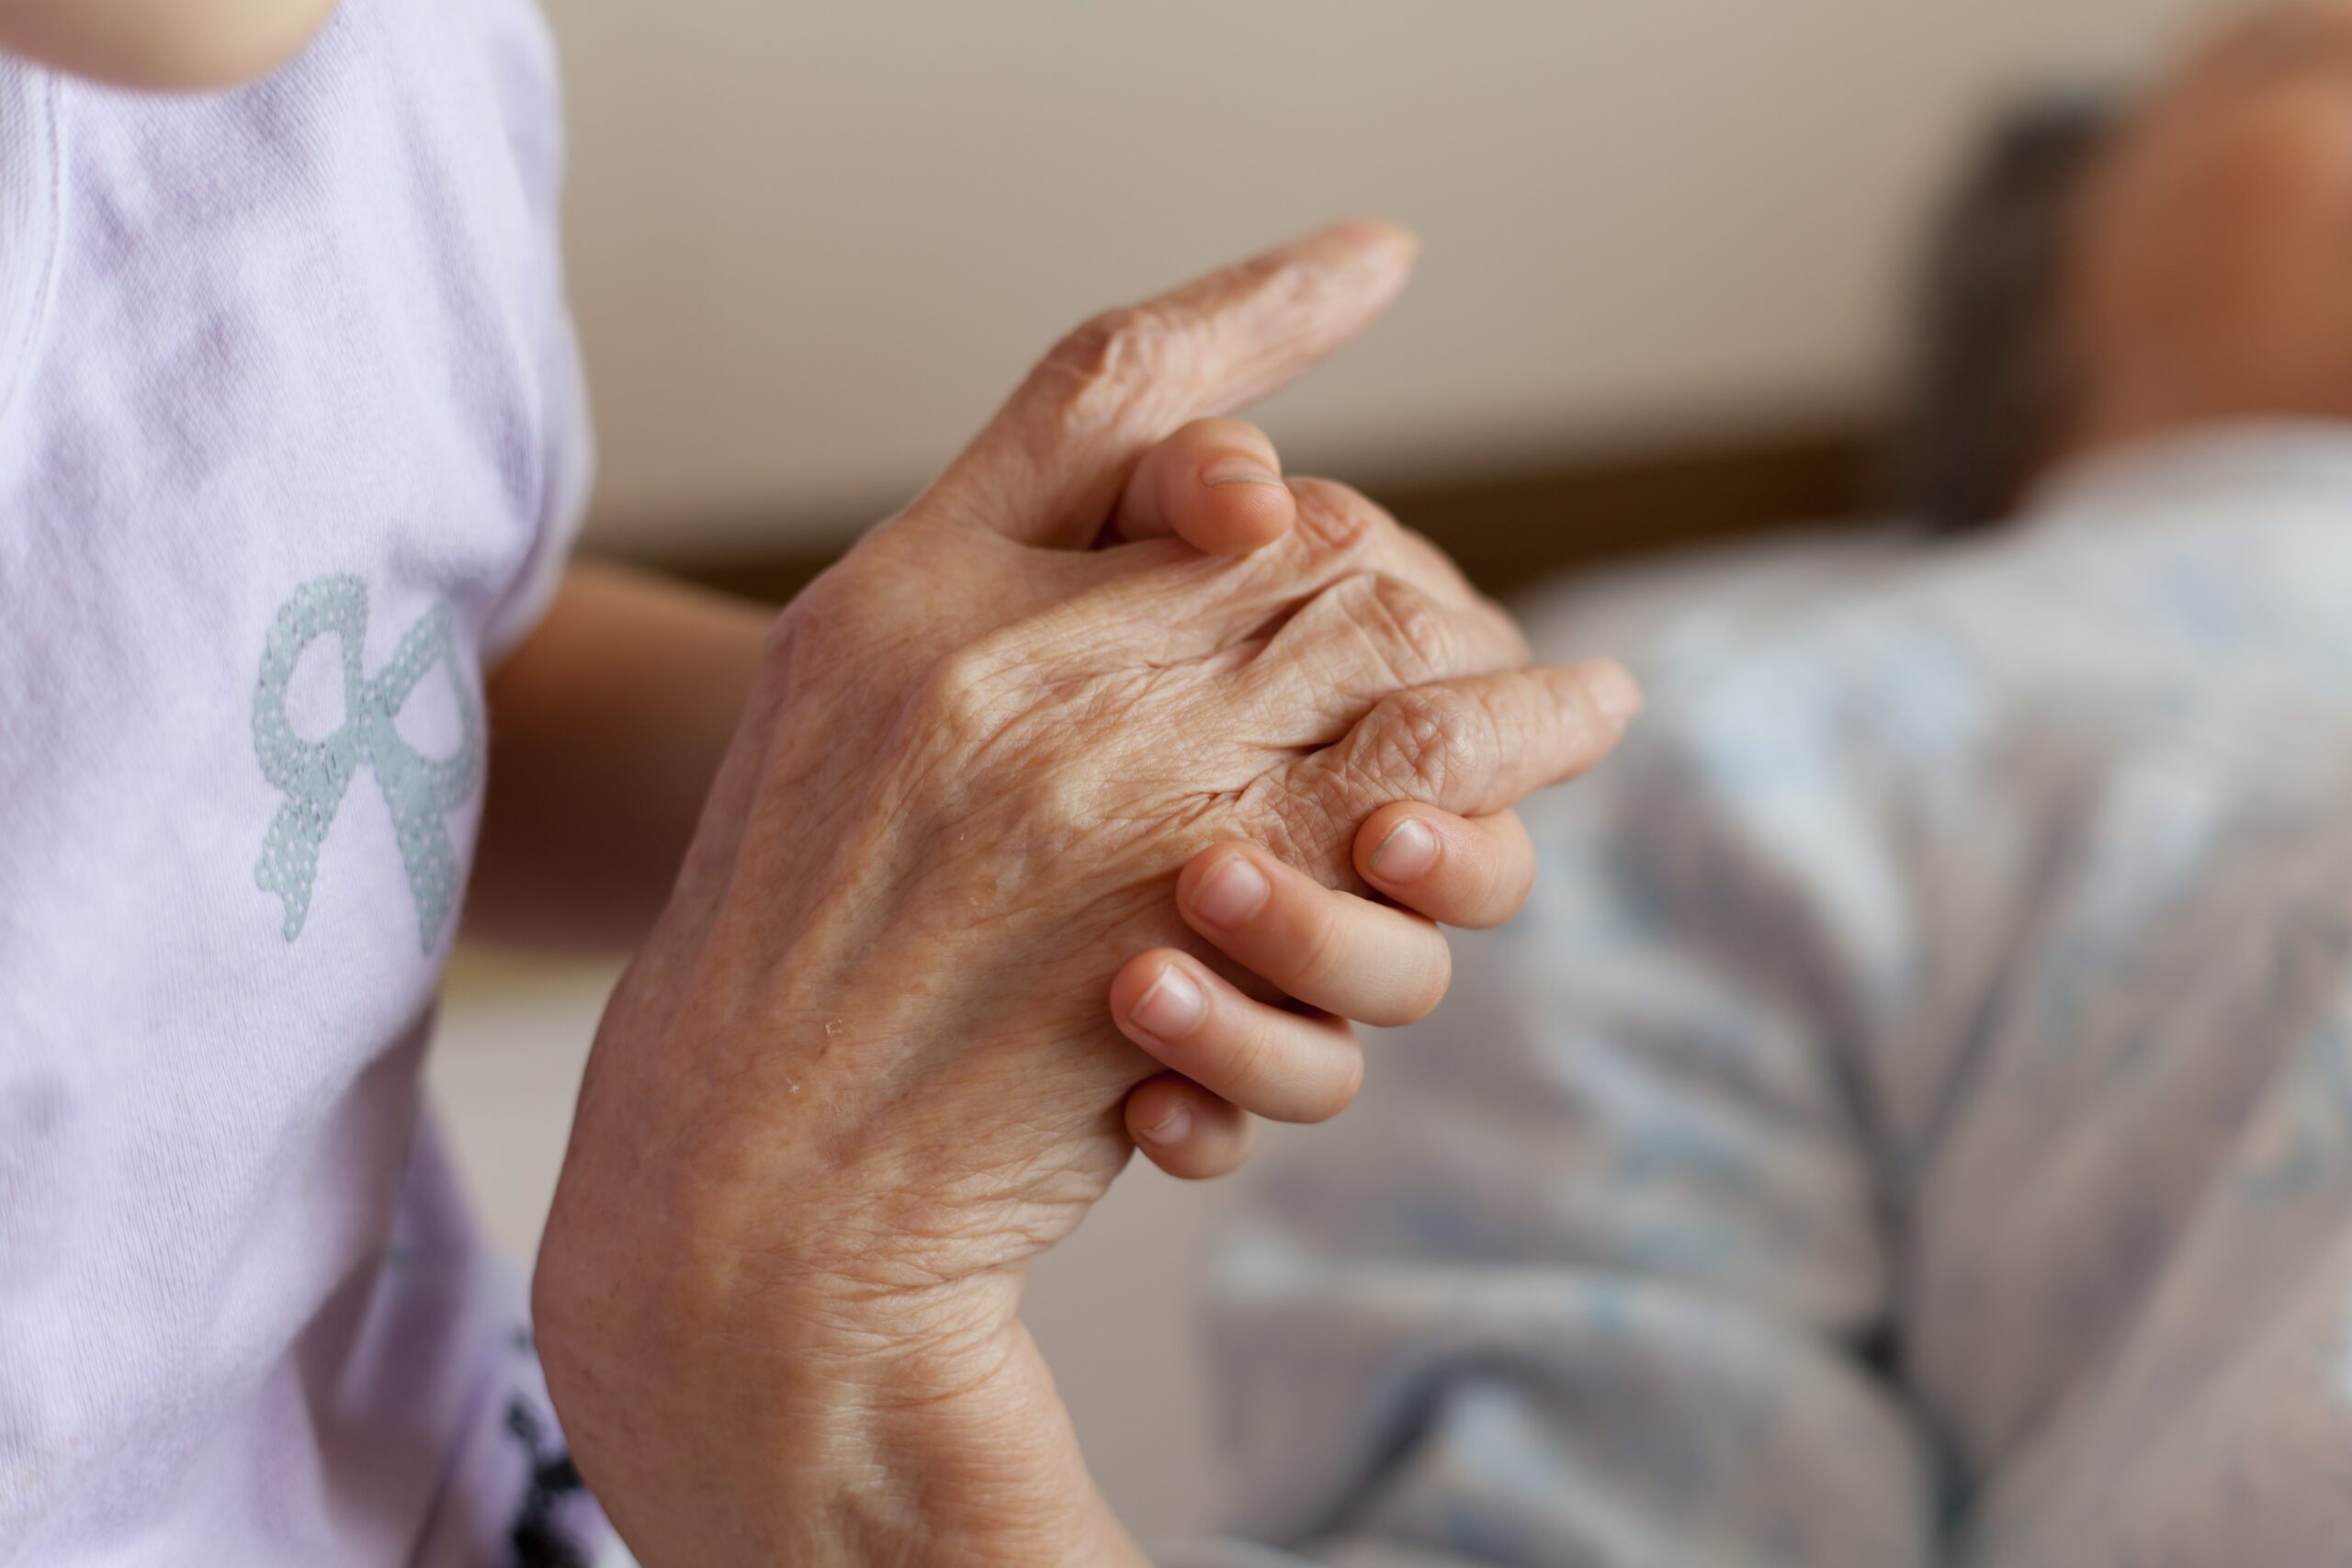 Arthritis and workers' compensation